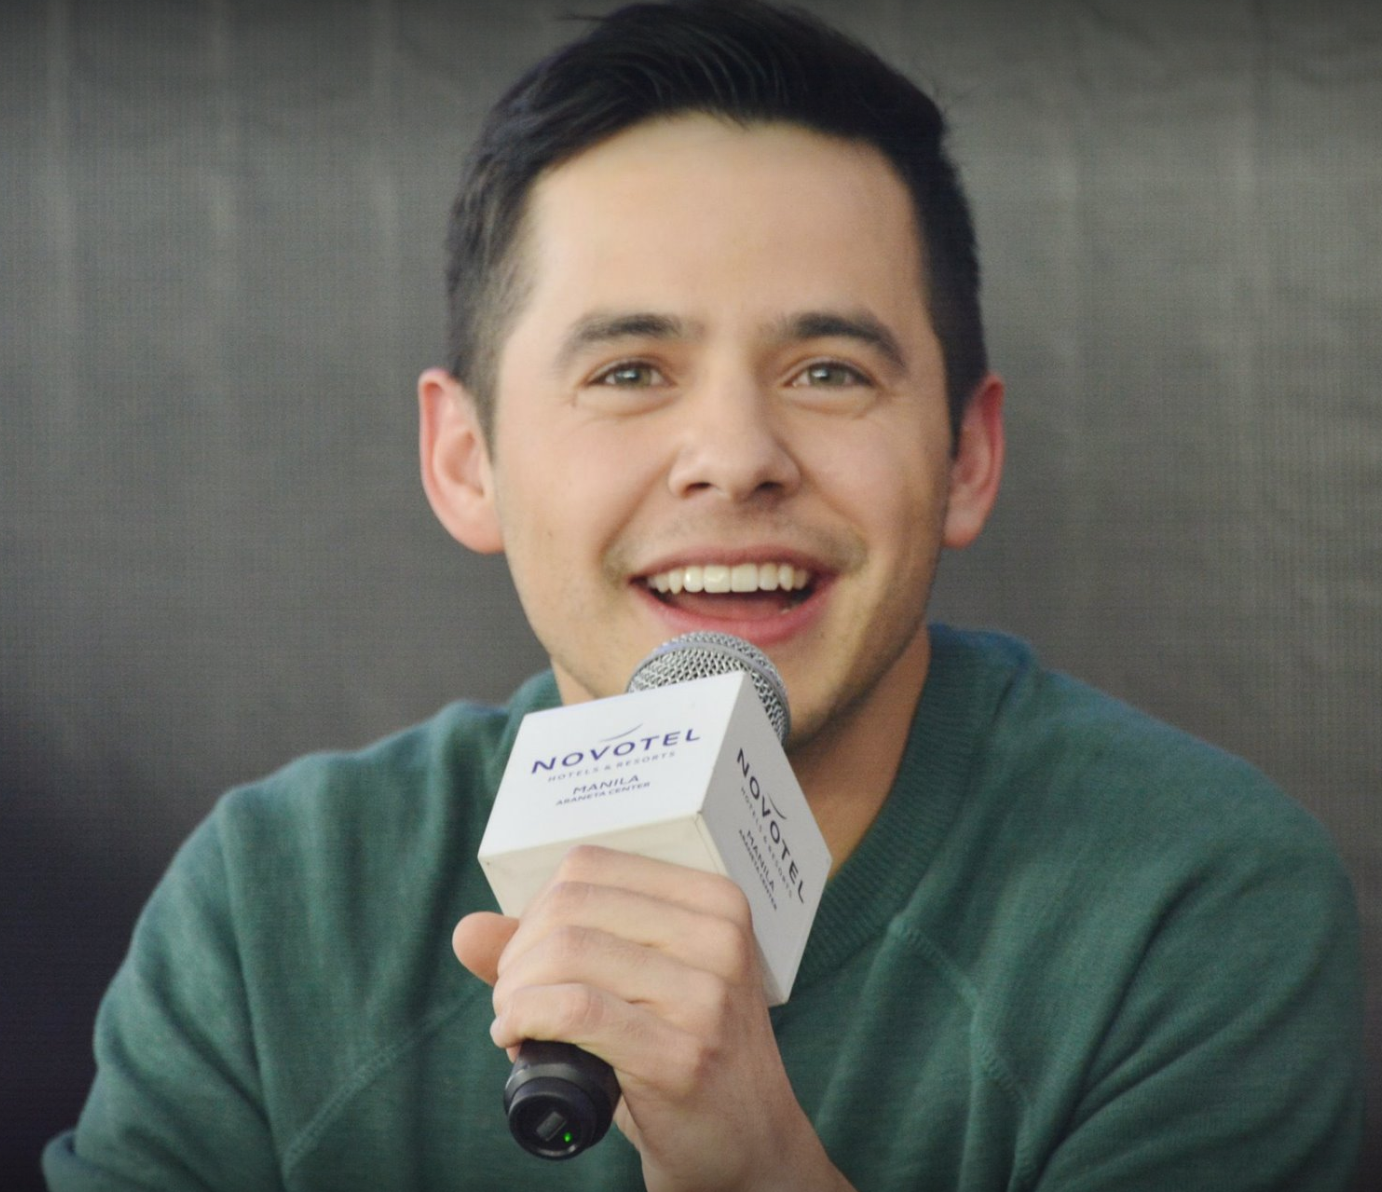 Archuleta Philippnes press conference photo 2018